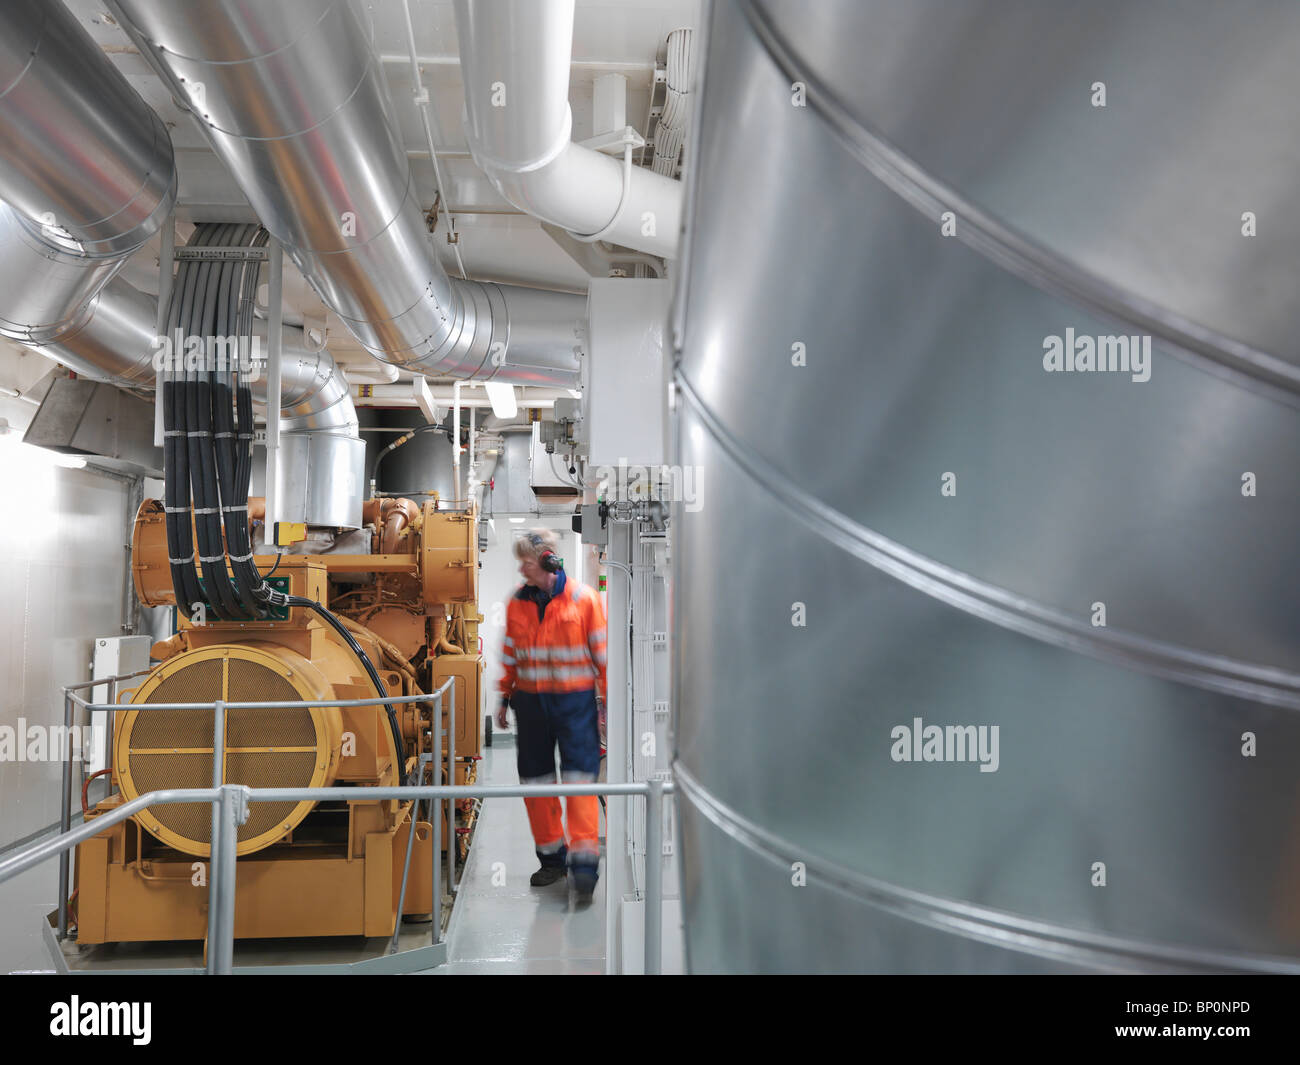 Engineer inspects Generator - Stock Image